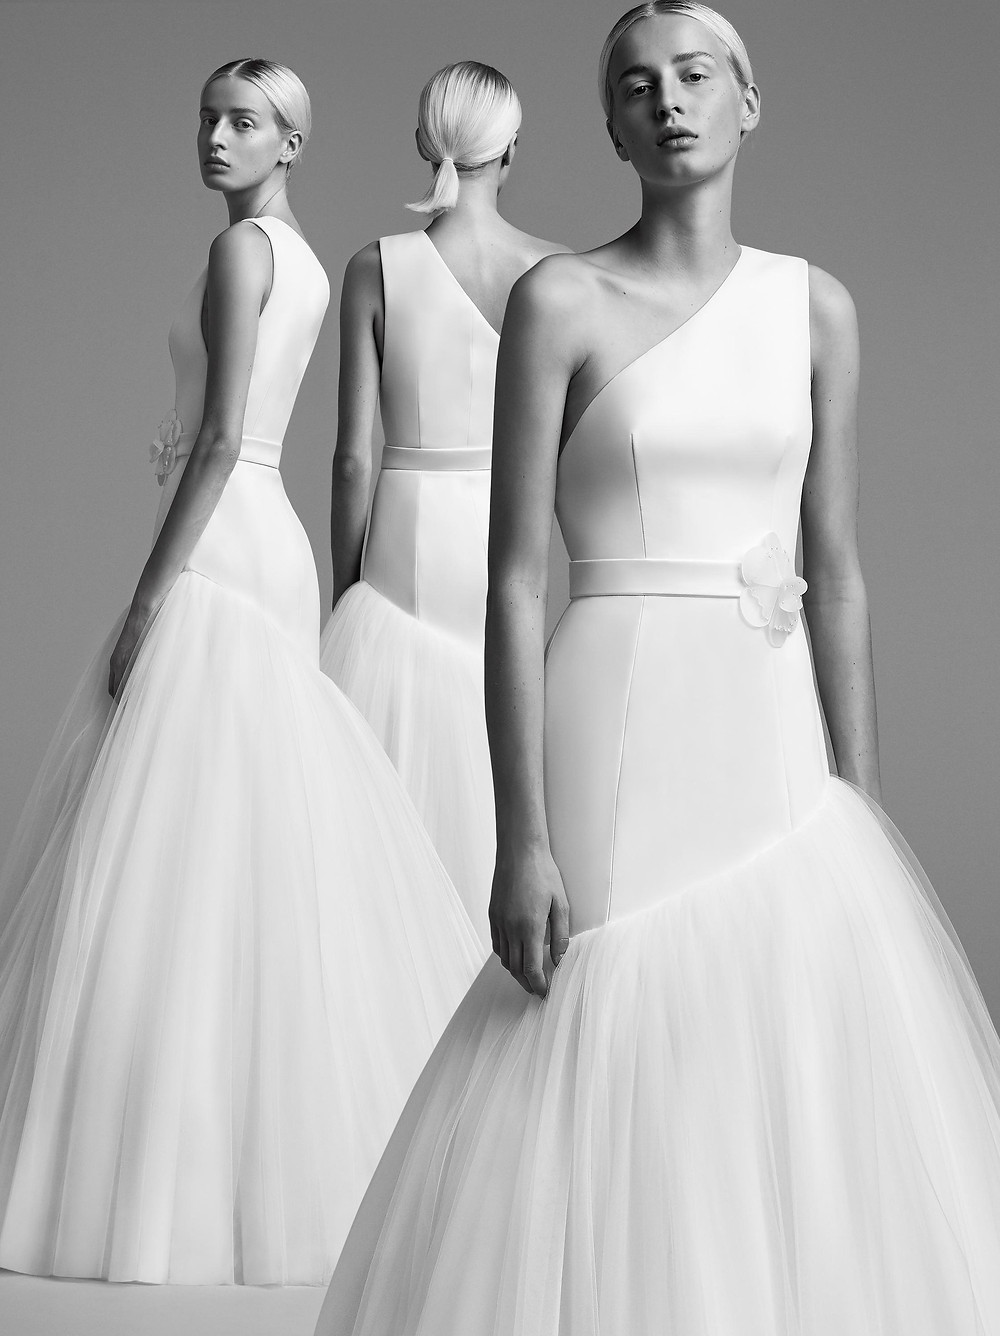 A Viktor & Rolf one shoulder mermaid wedding dress with clean lines, a tulle skirt and a floral belt